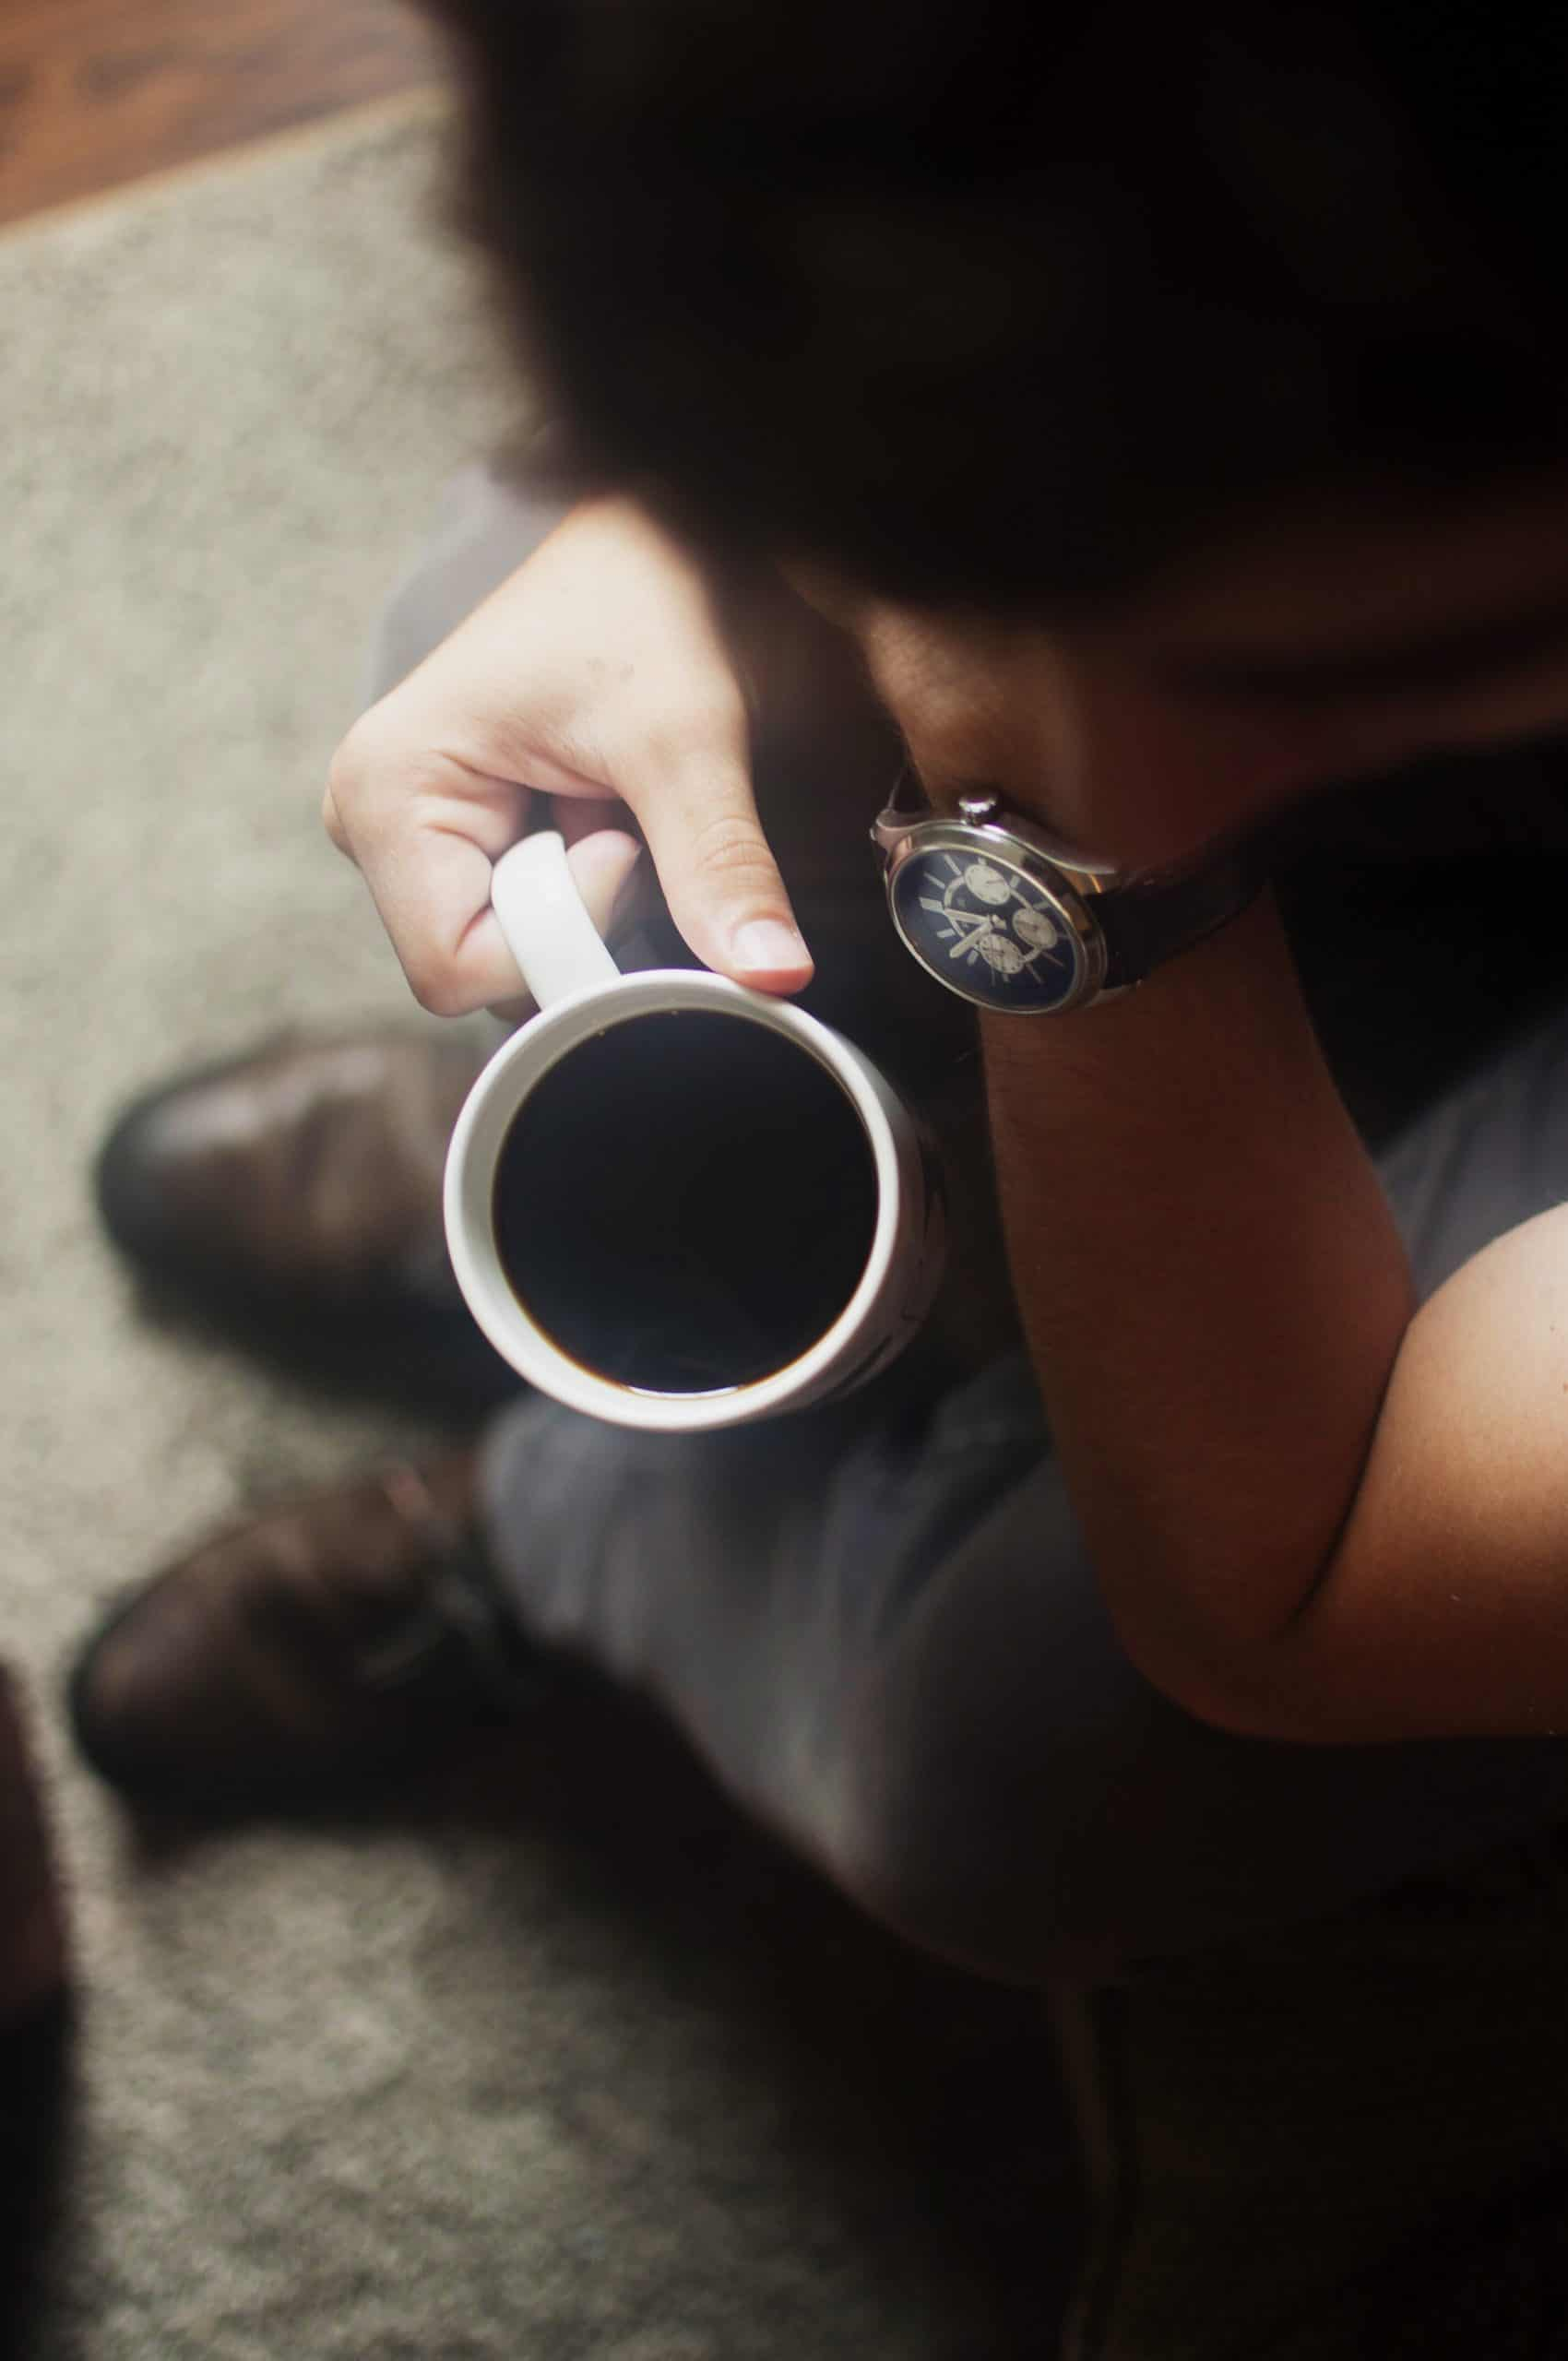 blurred person bending over a cup of black coffee